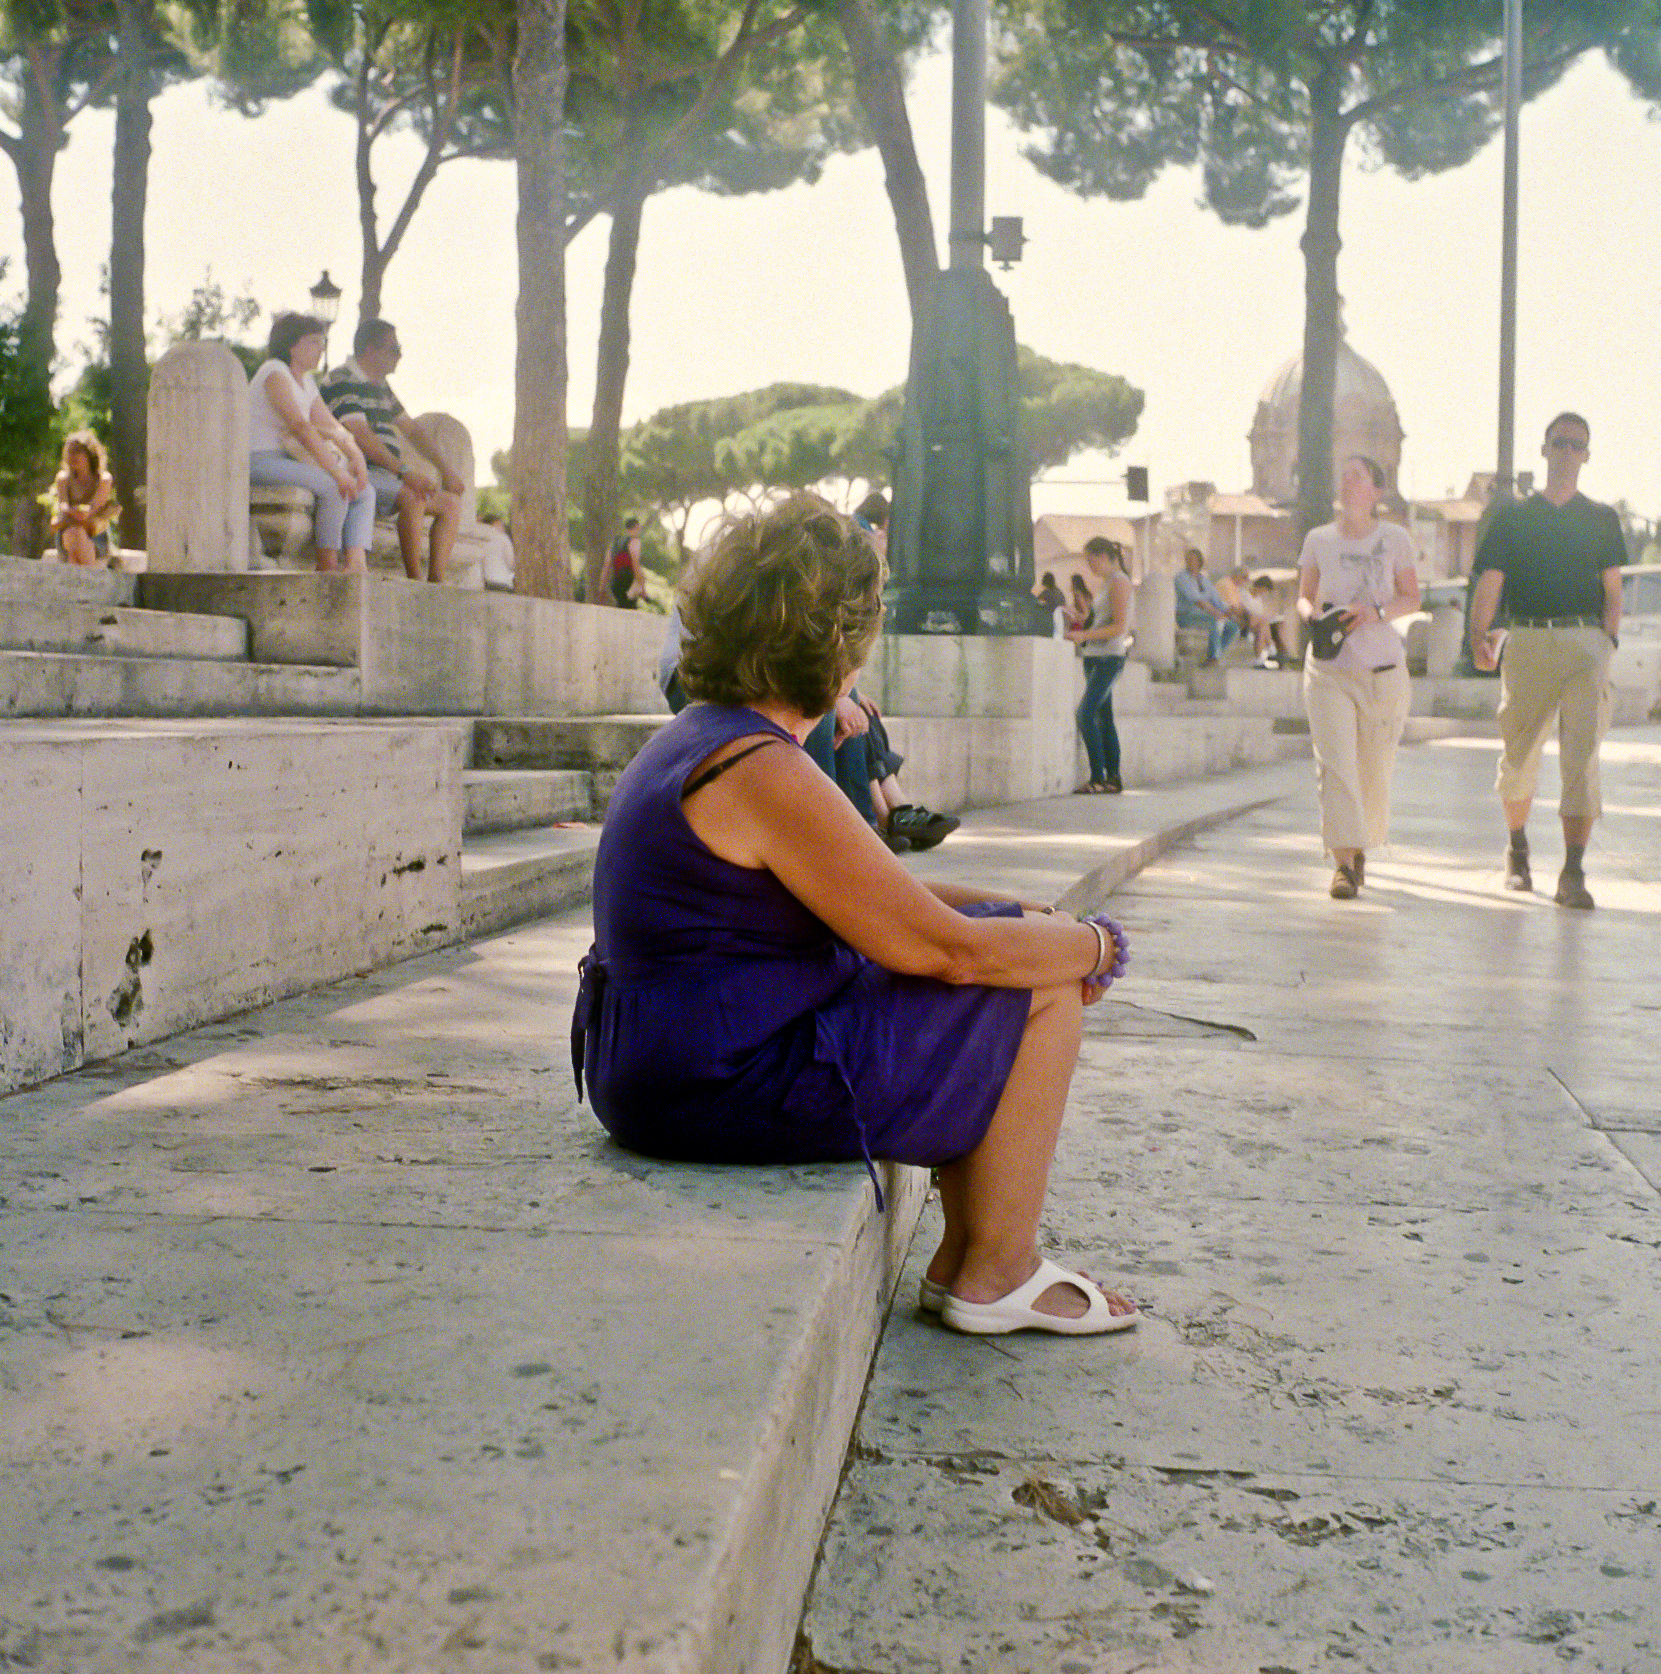 Woman Sitting in Rome,Italy.jpg